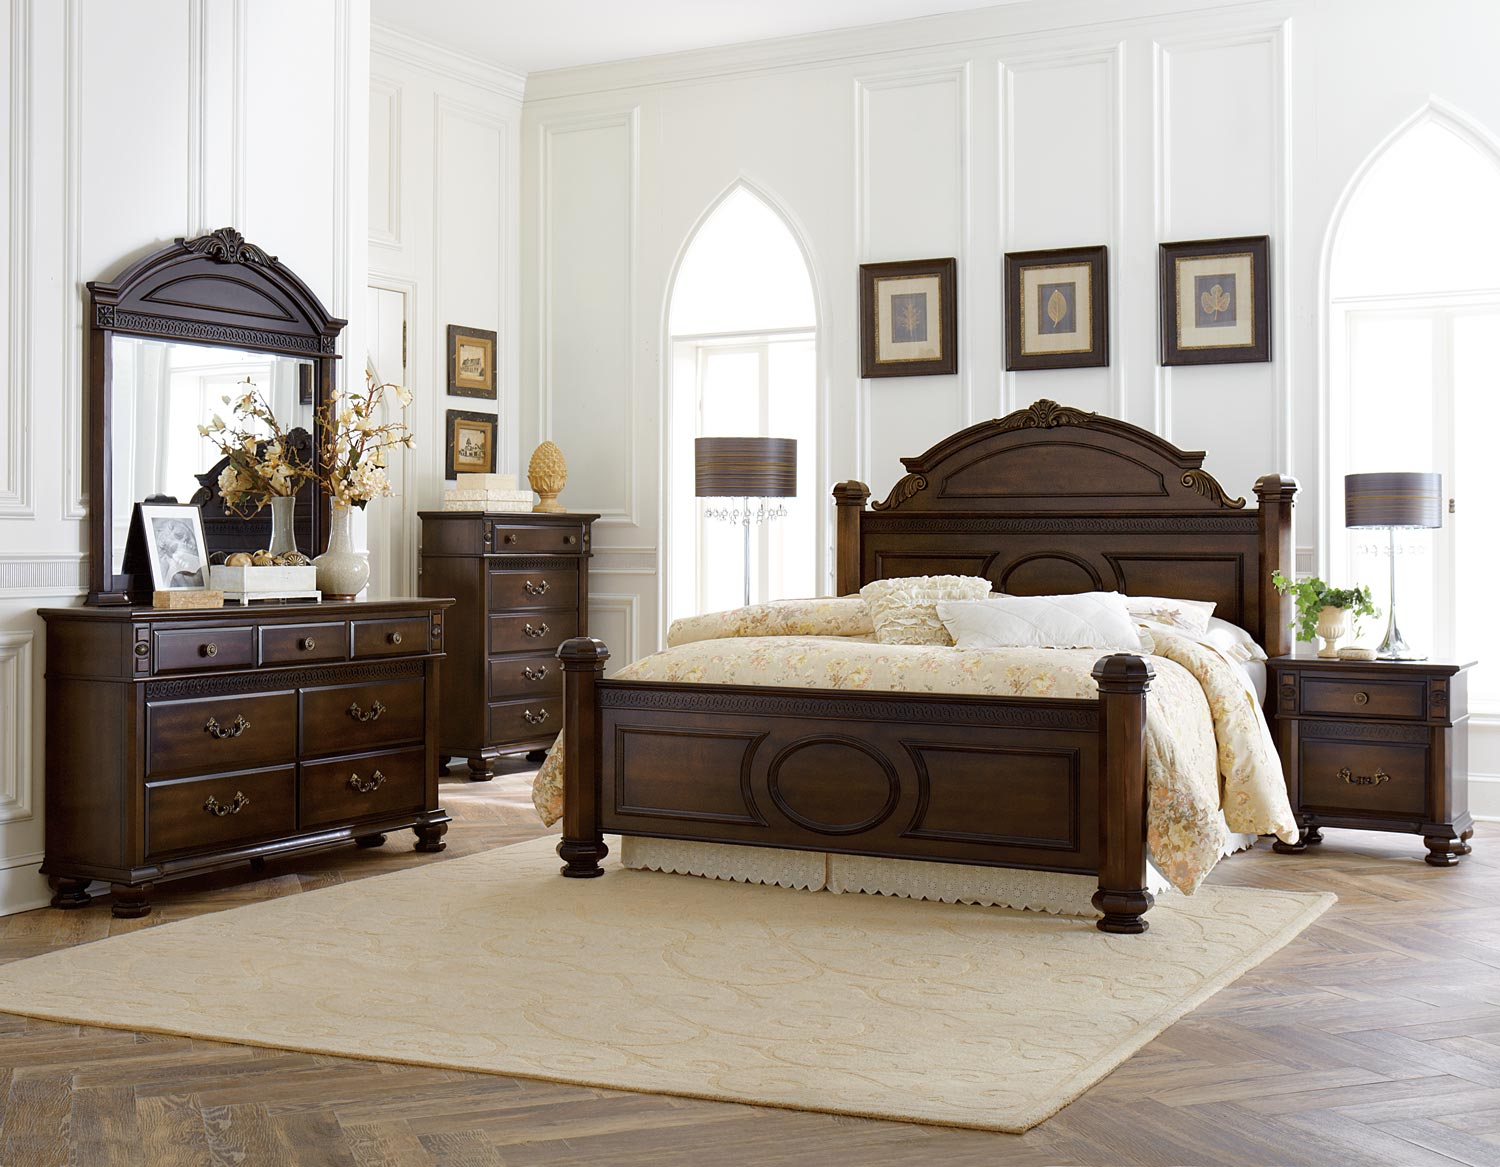 Homelegance Chantilly Glen Bedroom Set - Dark Cherry